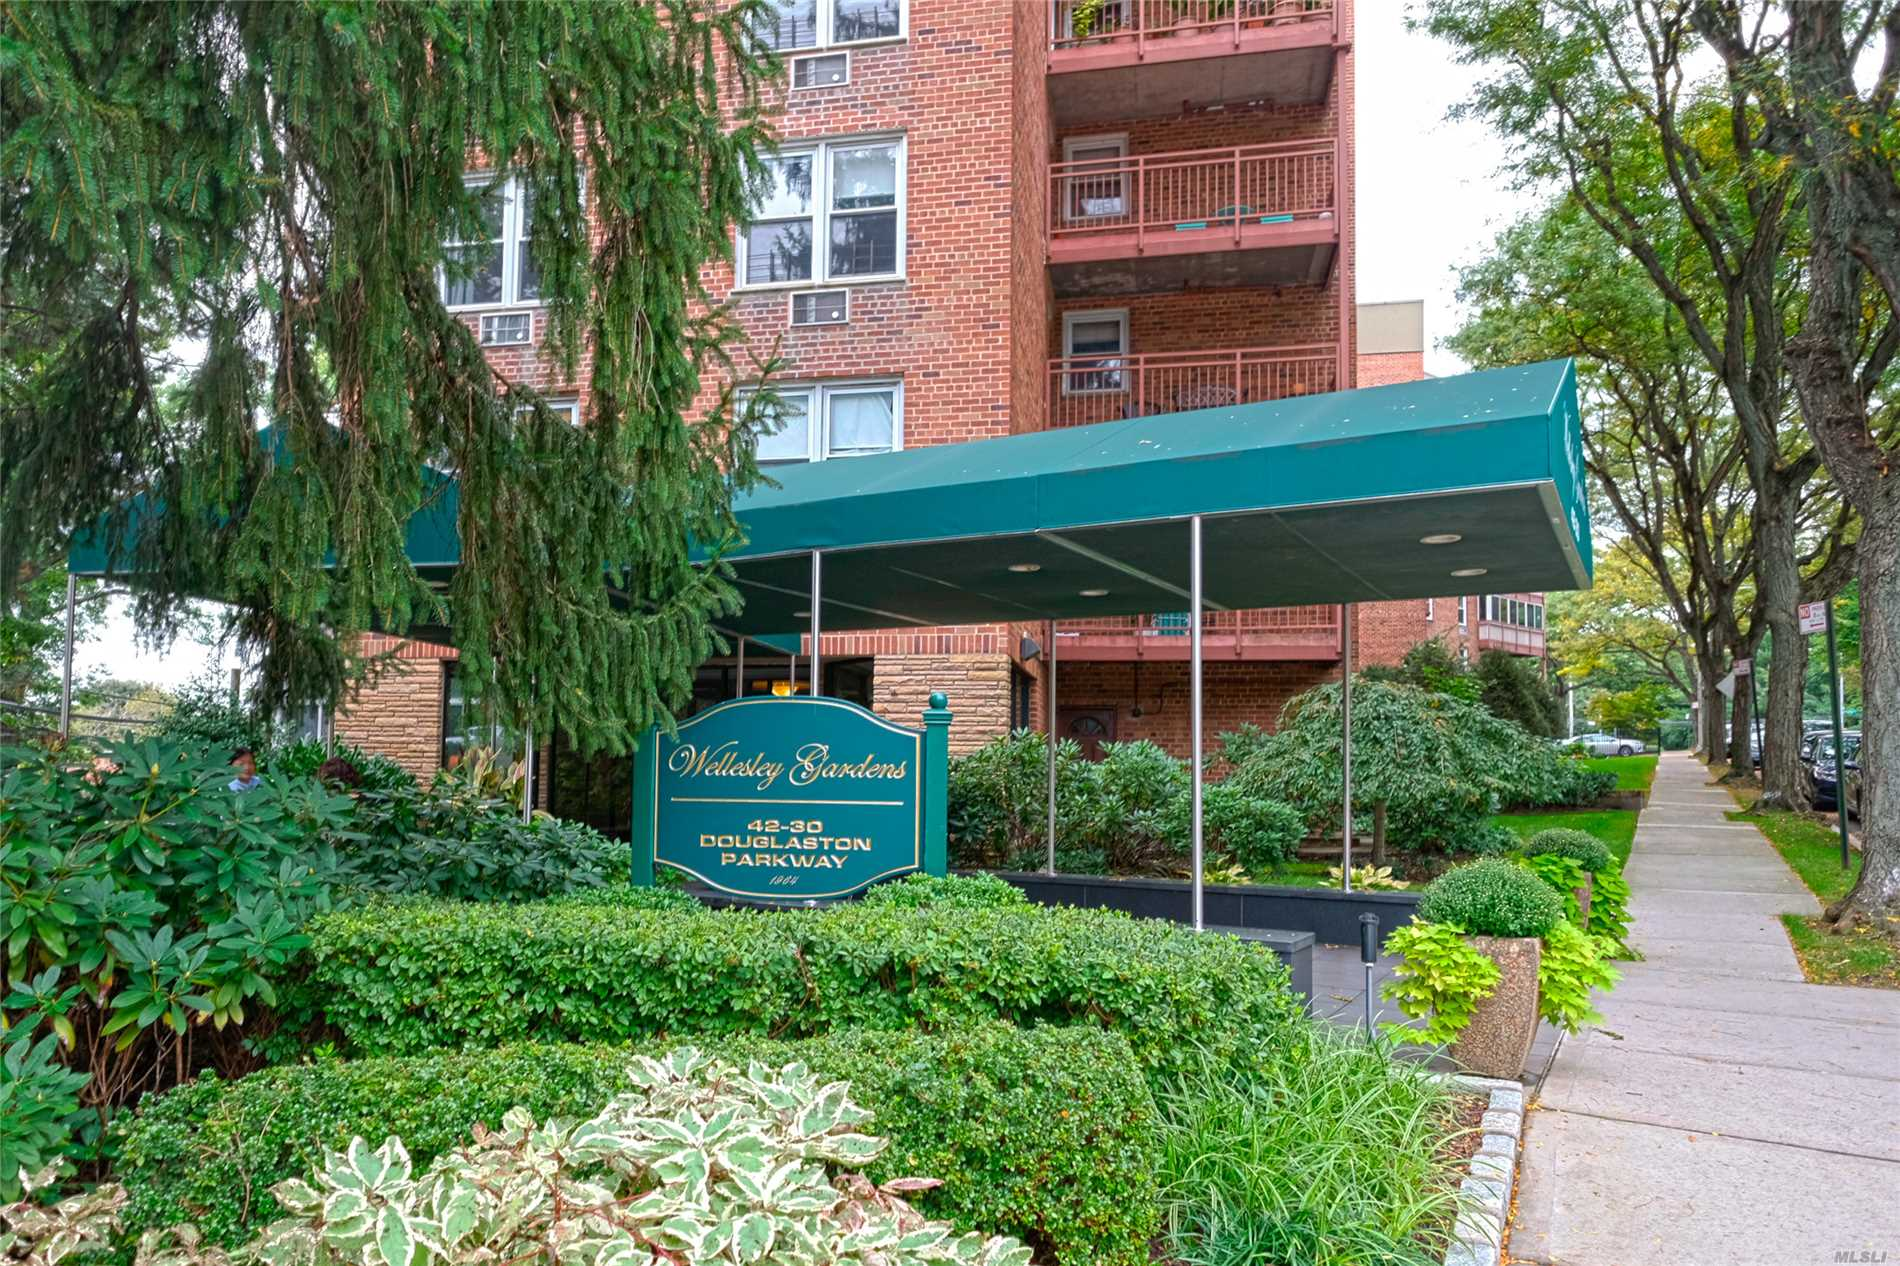 Douglaston. Lovely Spacious High Floor Jr4 Unit In Premier Wellesley Gardens Co-Op. Entry Foyer W/ Closet, Great Living Rm, Dining Rm, Kitchen, Large Bedroom With Plenty Of Storage, Full Bath W/ Window. Gym, Storage & Laundry In Building. One Block To Lirr, Shops And Restaurants. Convenient To All.